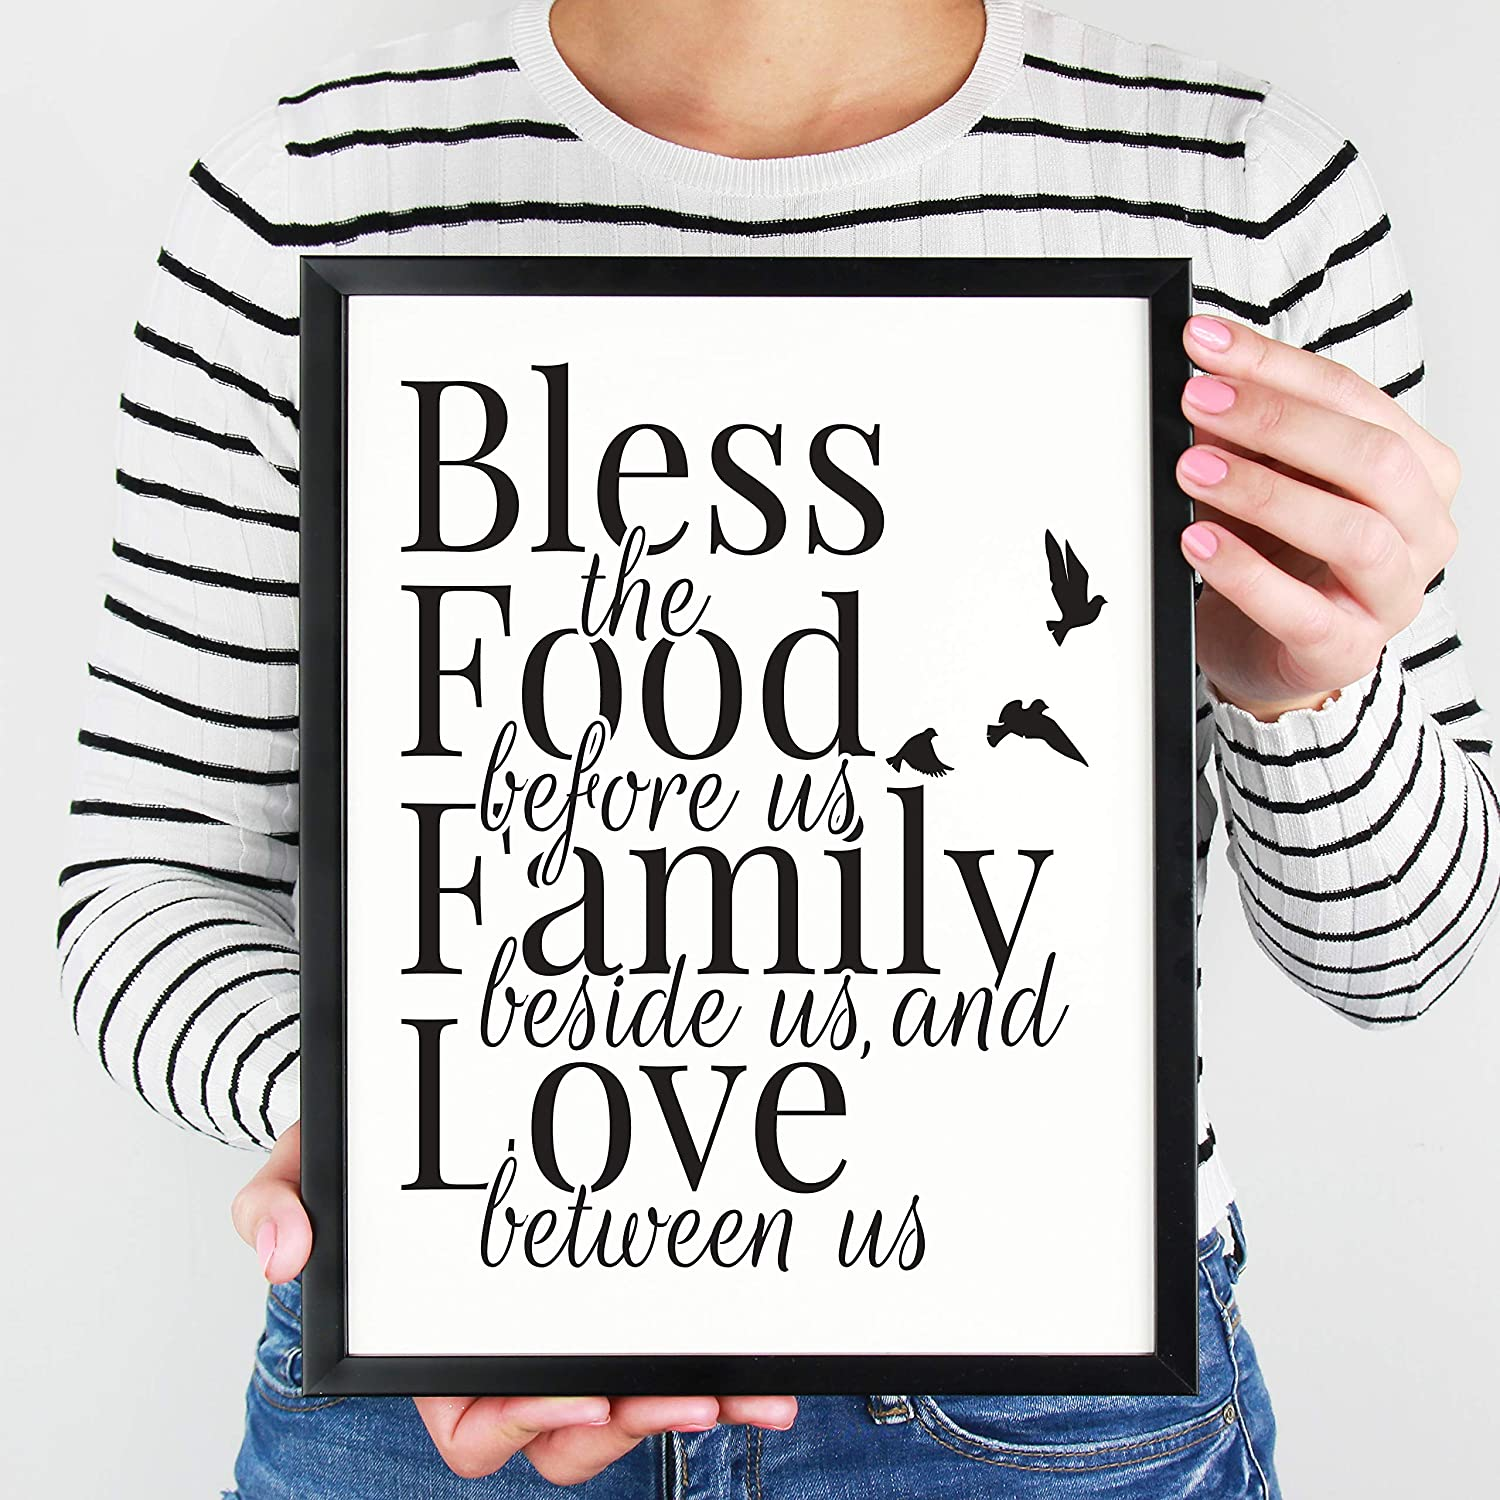 Bless The Food Before Us - Dining Room, Kitchen Decor Wall Art Print - FRAMED in BLACK - 8x10